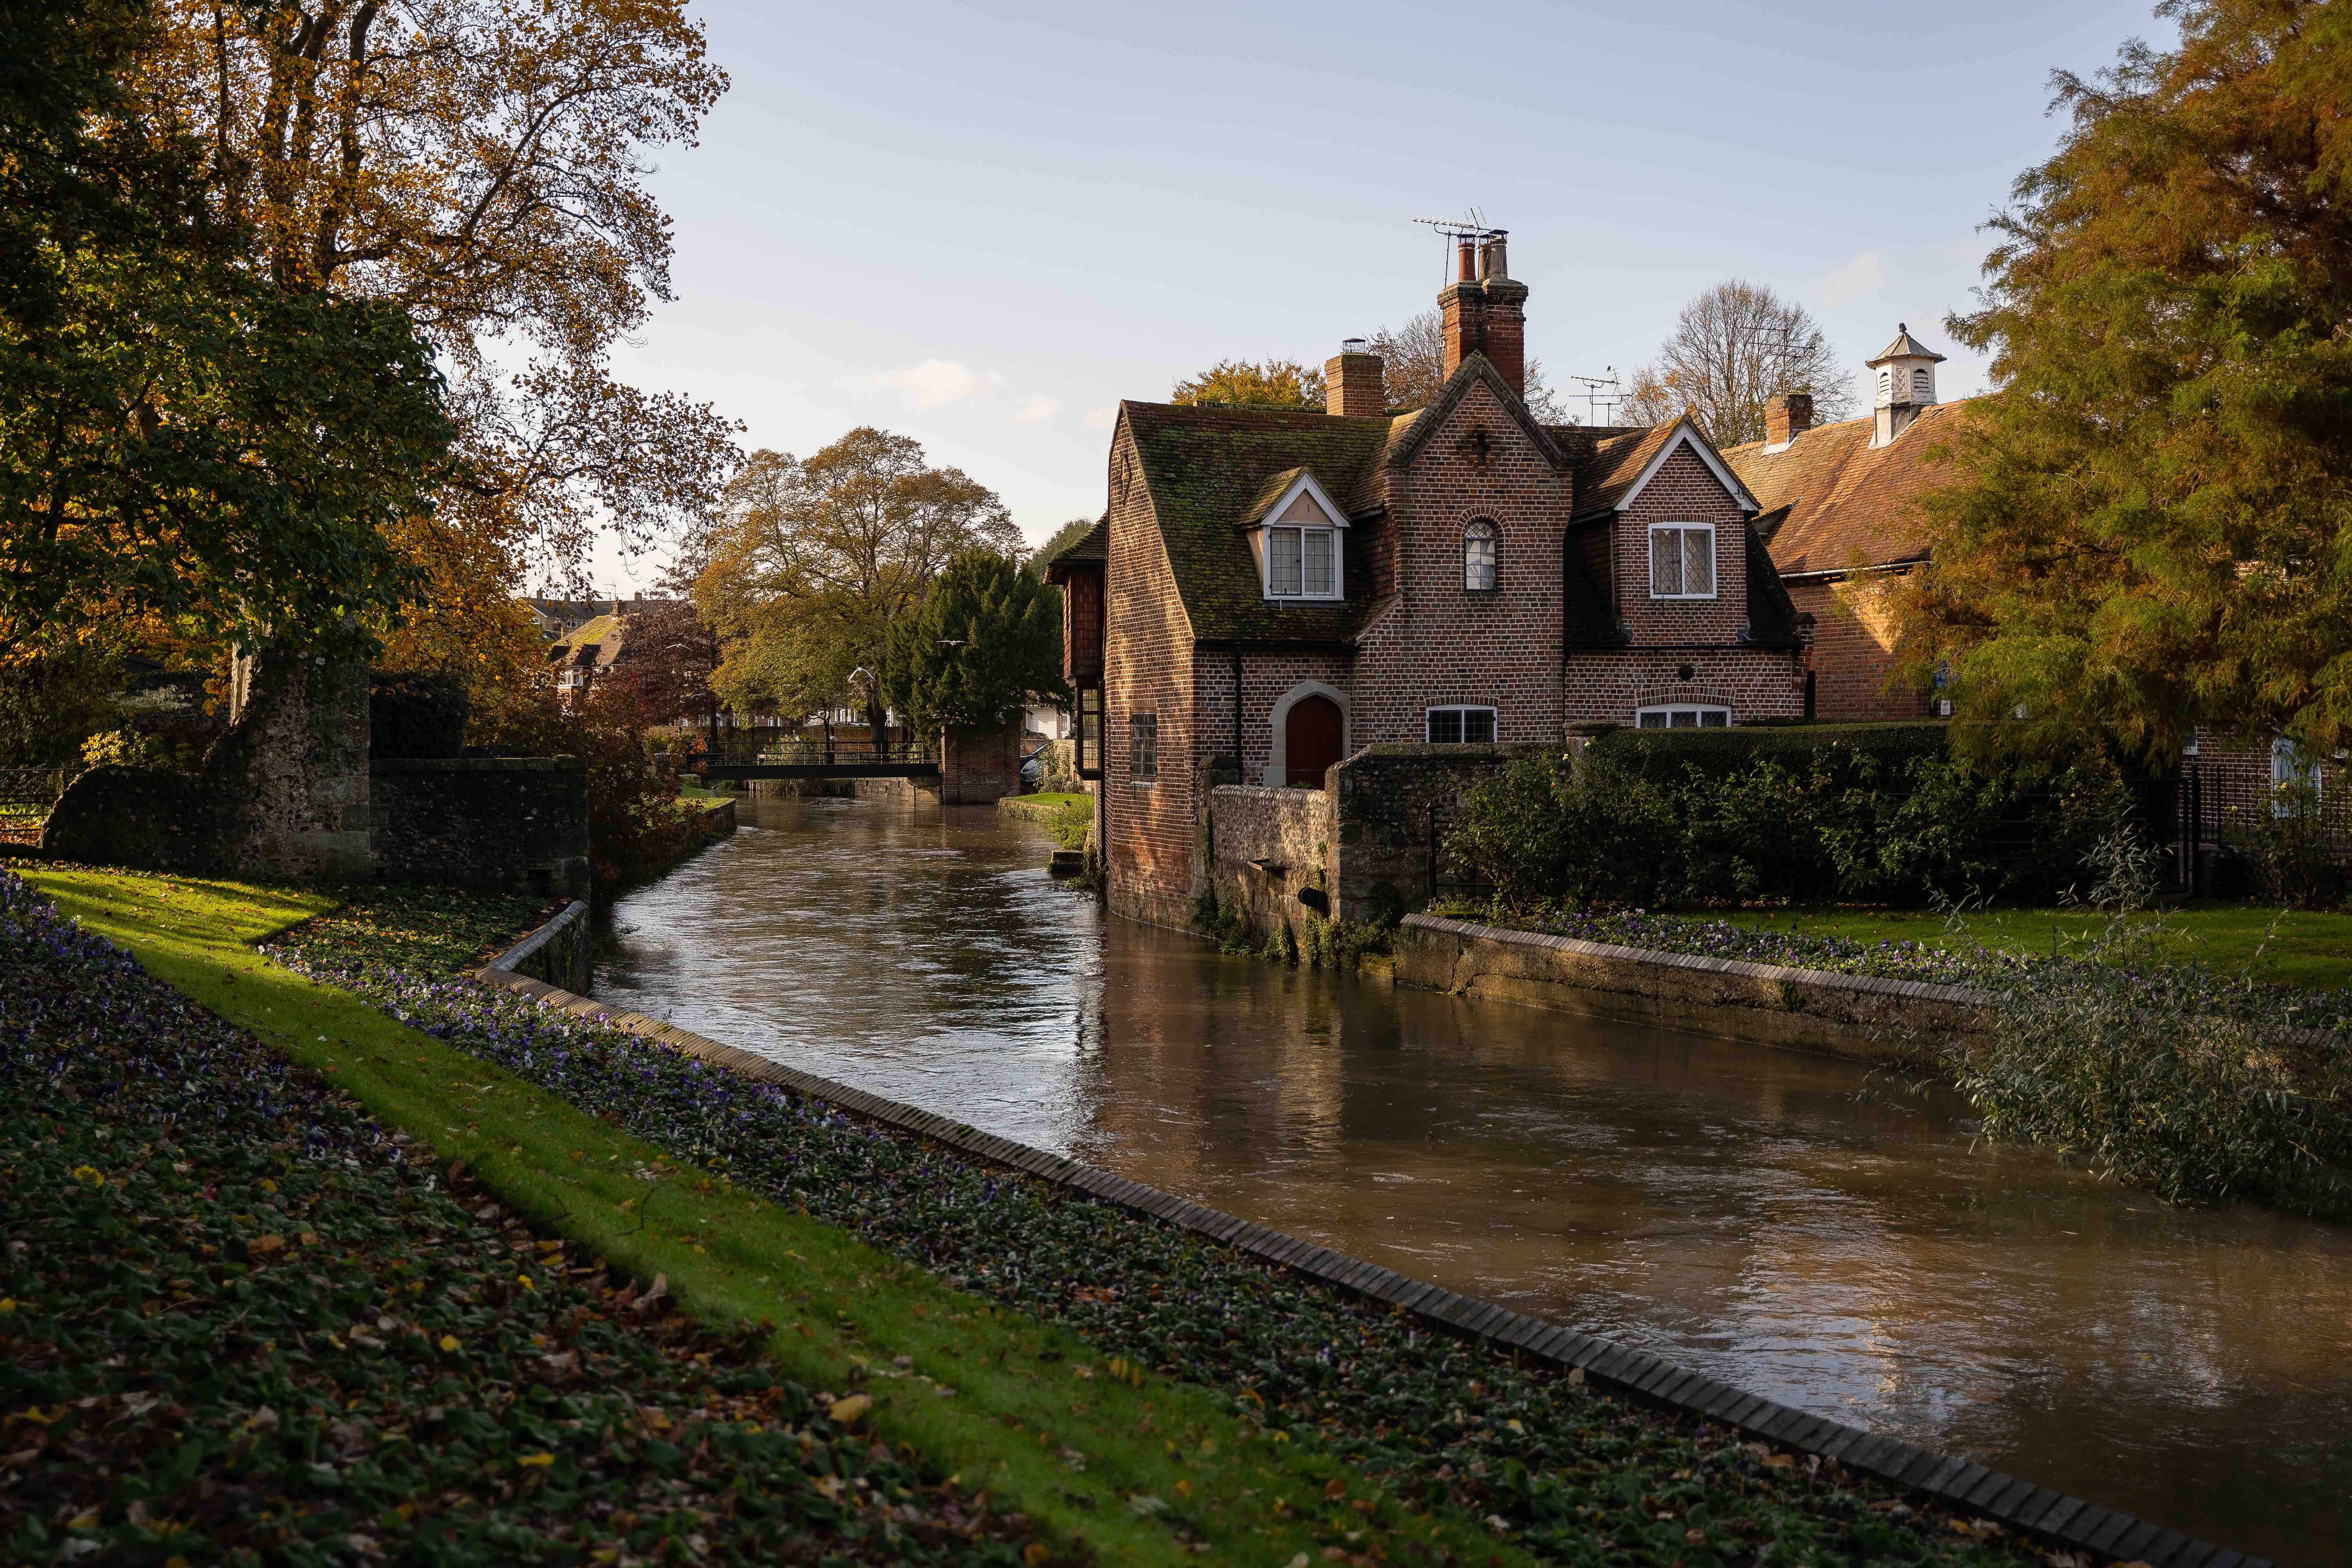 Charming Canterbury, one of the incredible stops on our Kent tour!